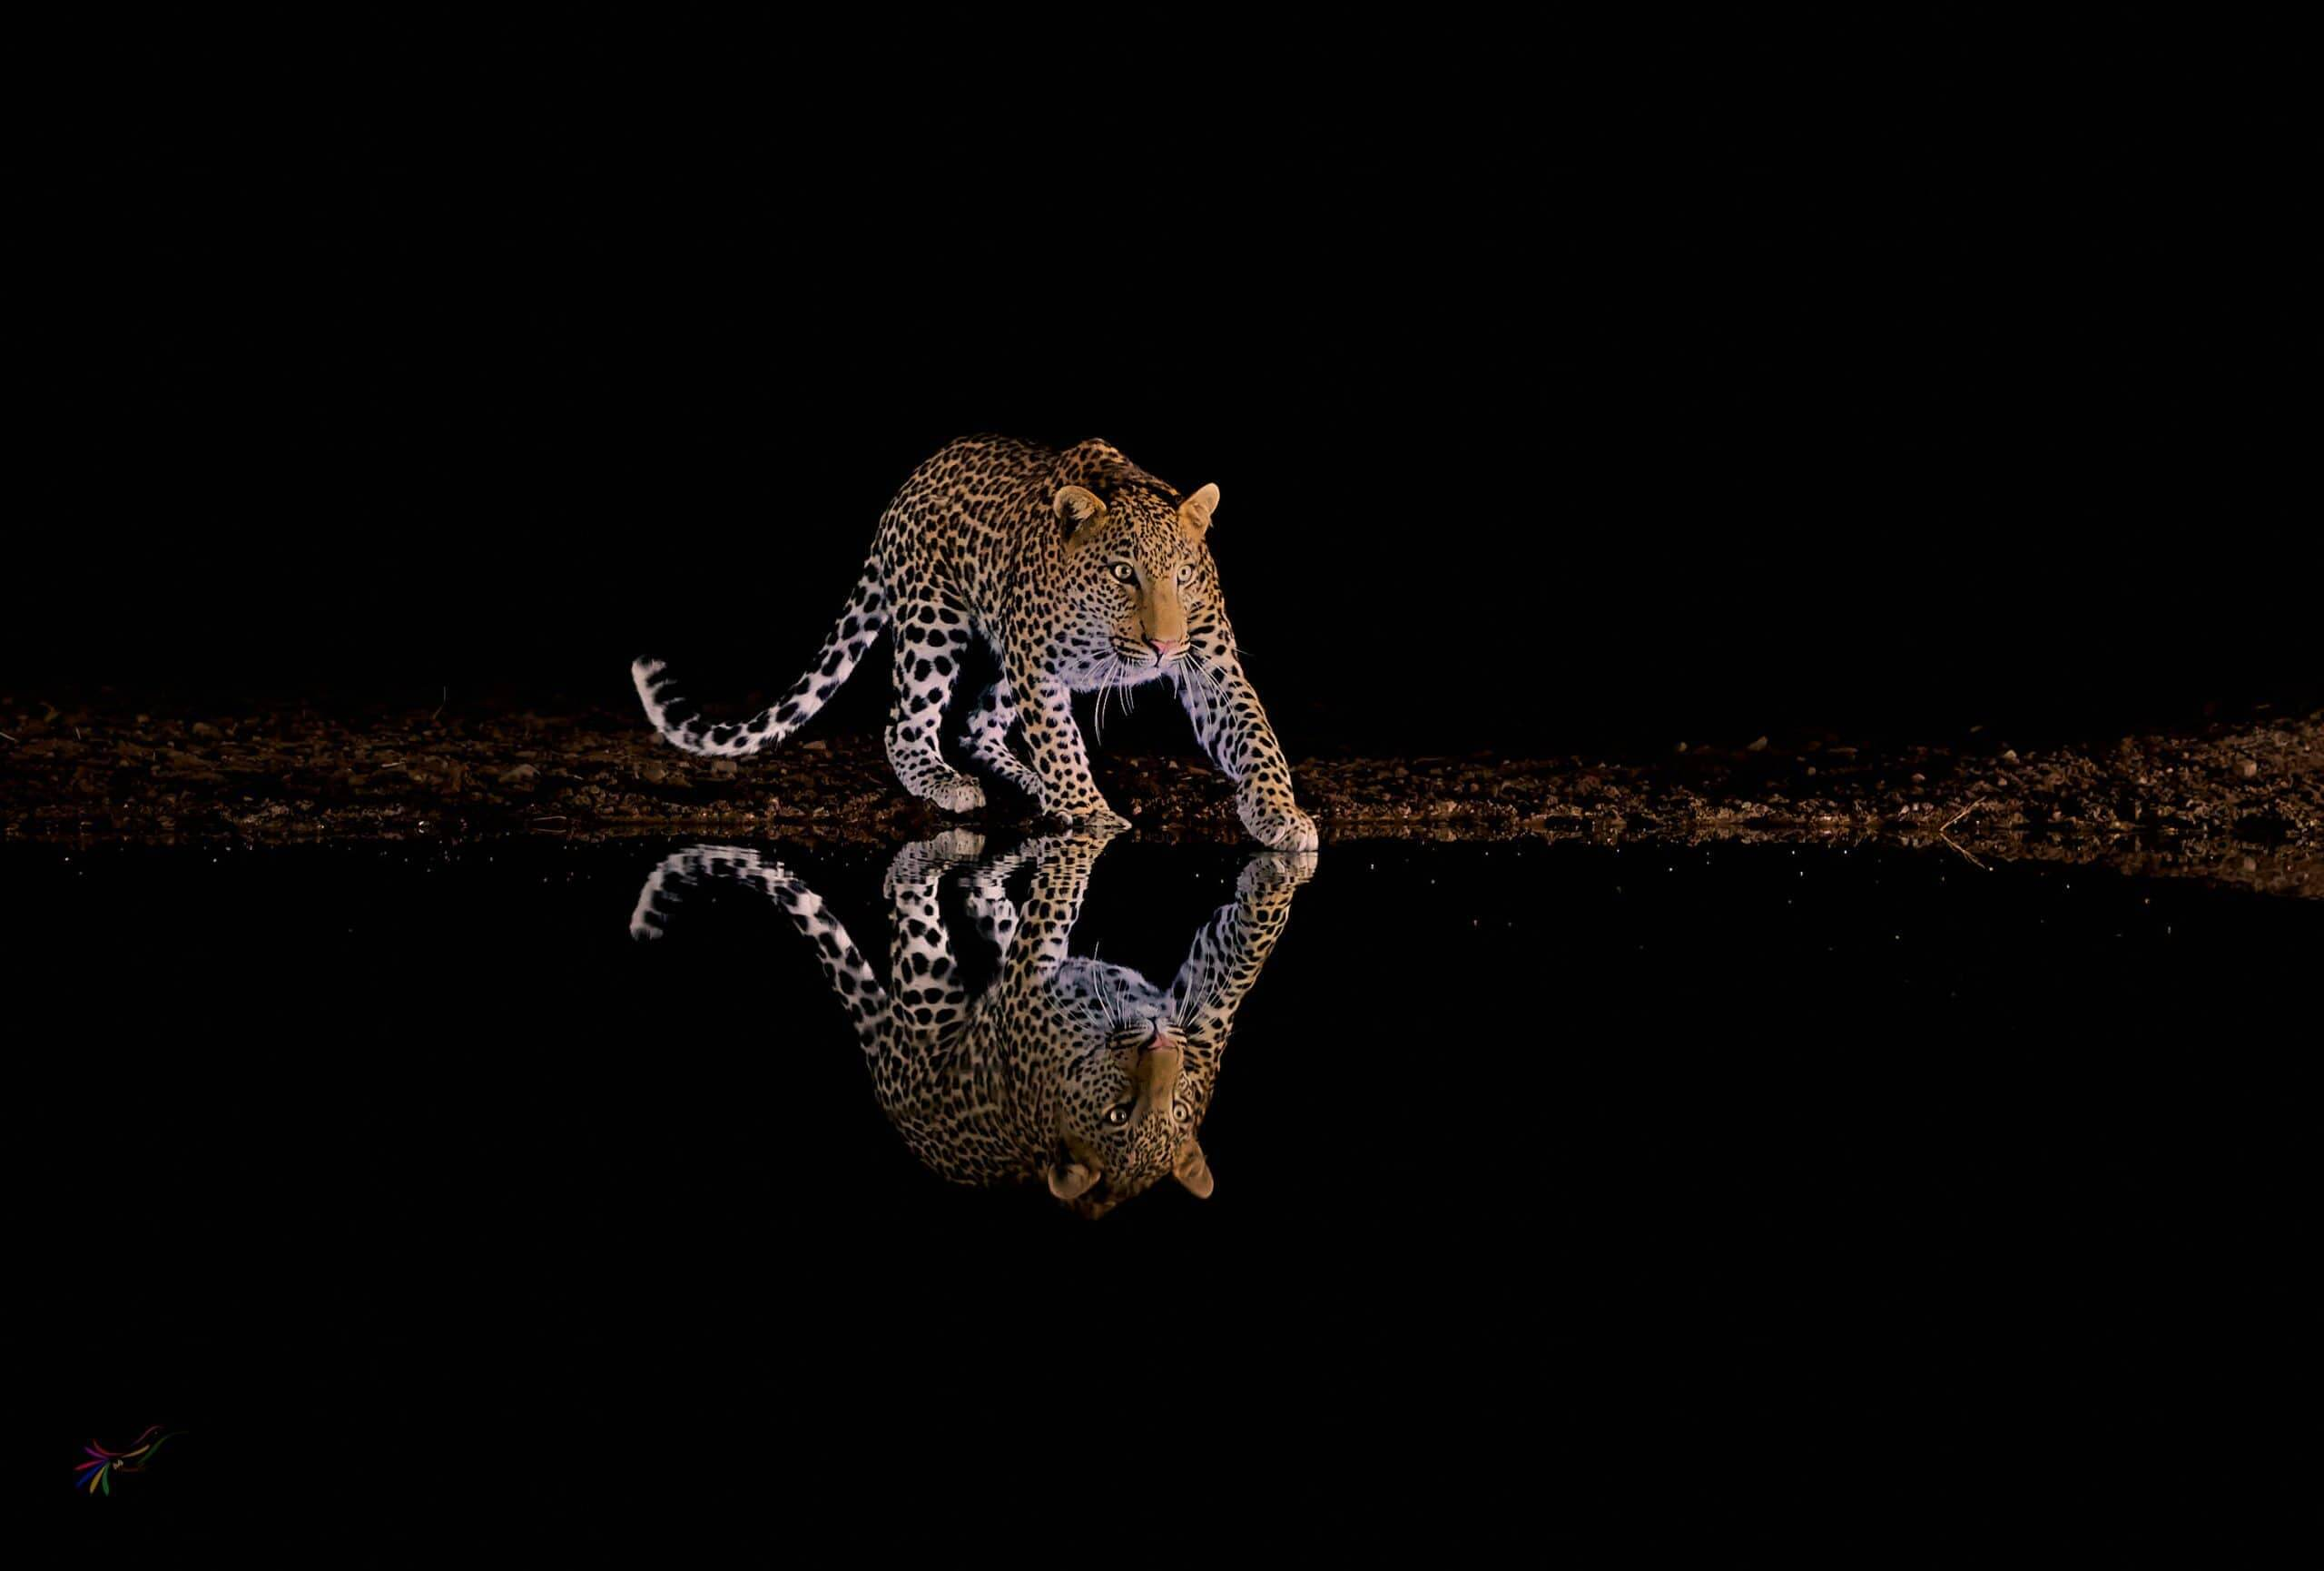 African leopard photograph